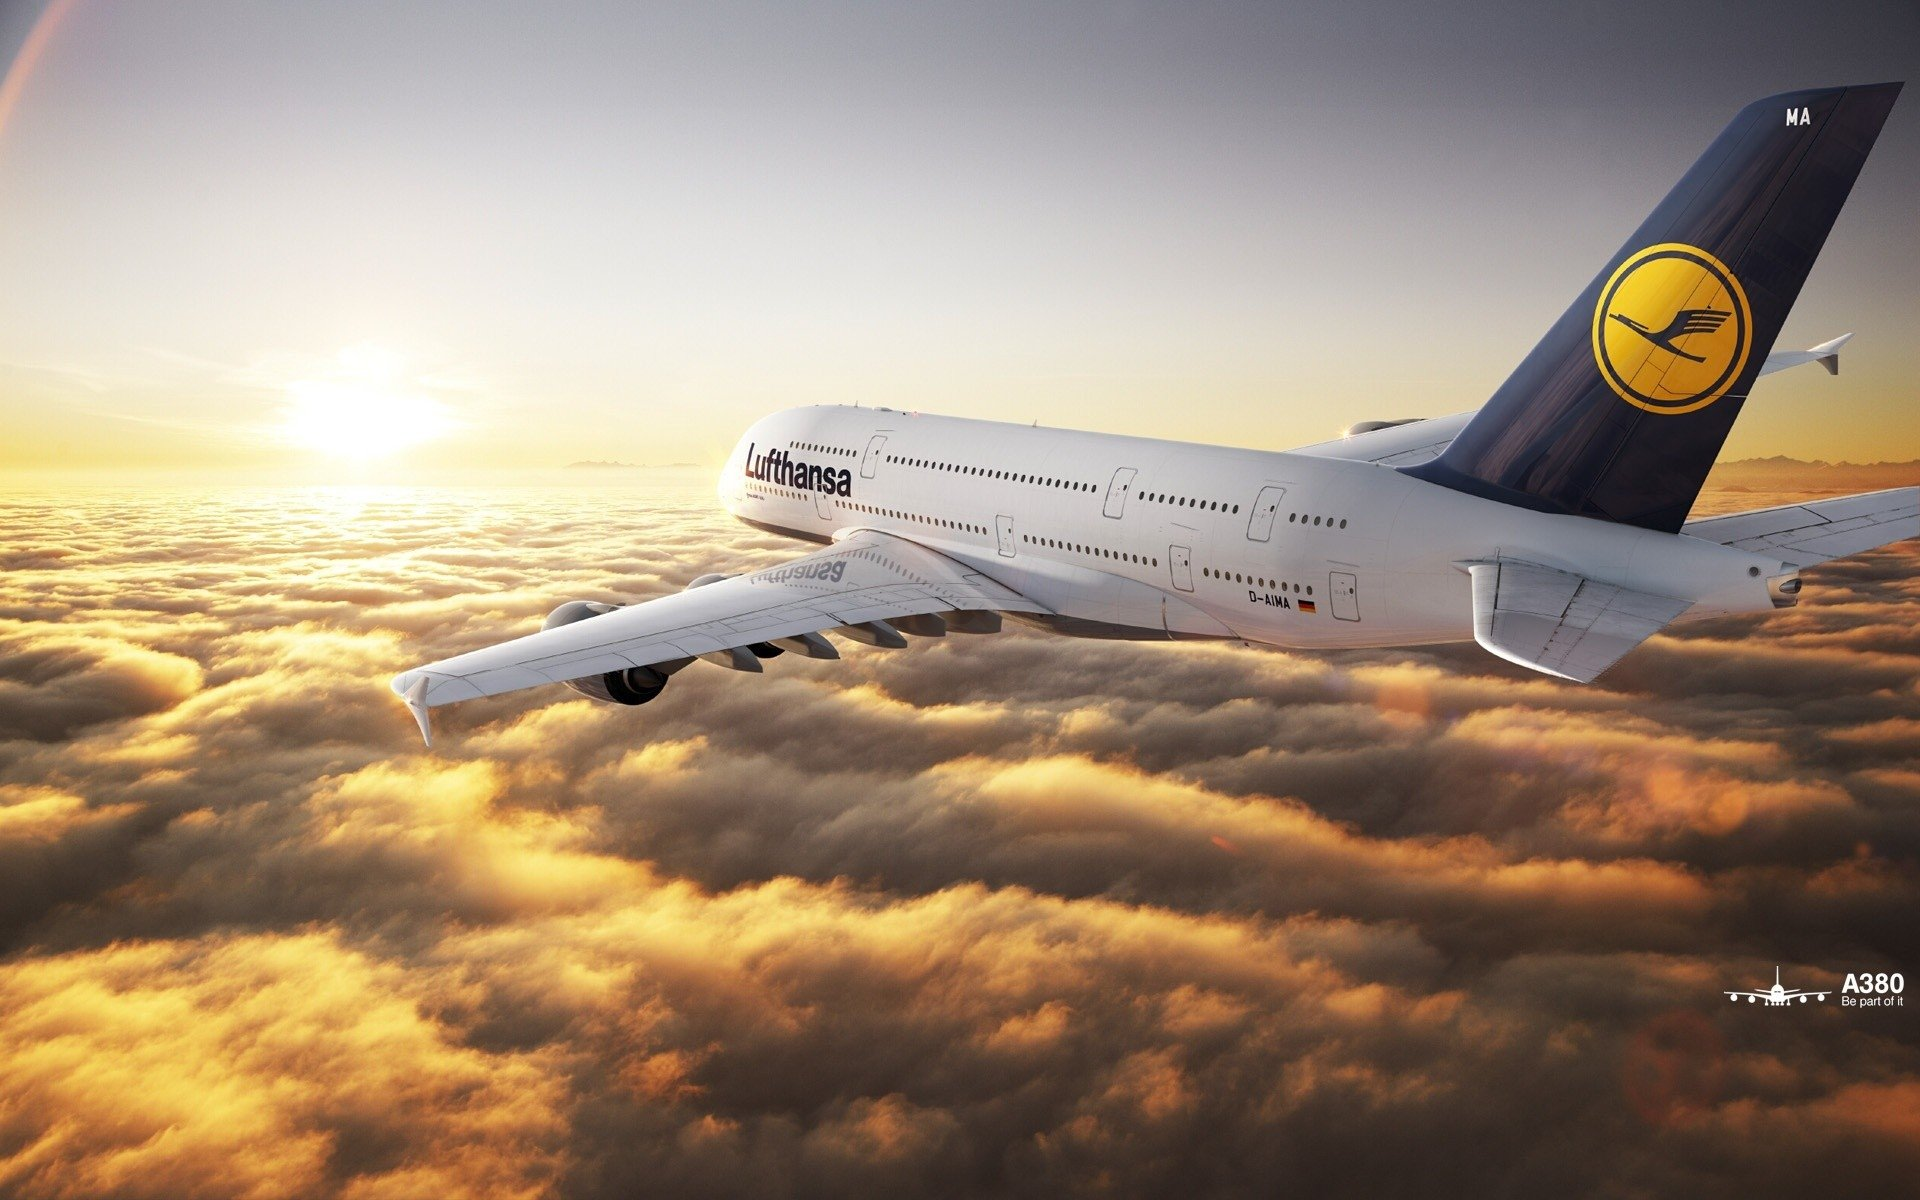 Airbus A380 HD Wallpaper Background Image 1920x1200 ID 1920x1200